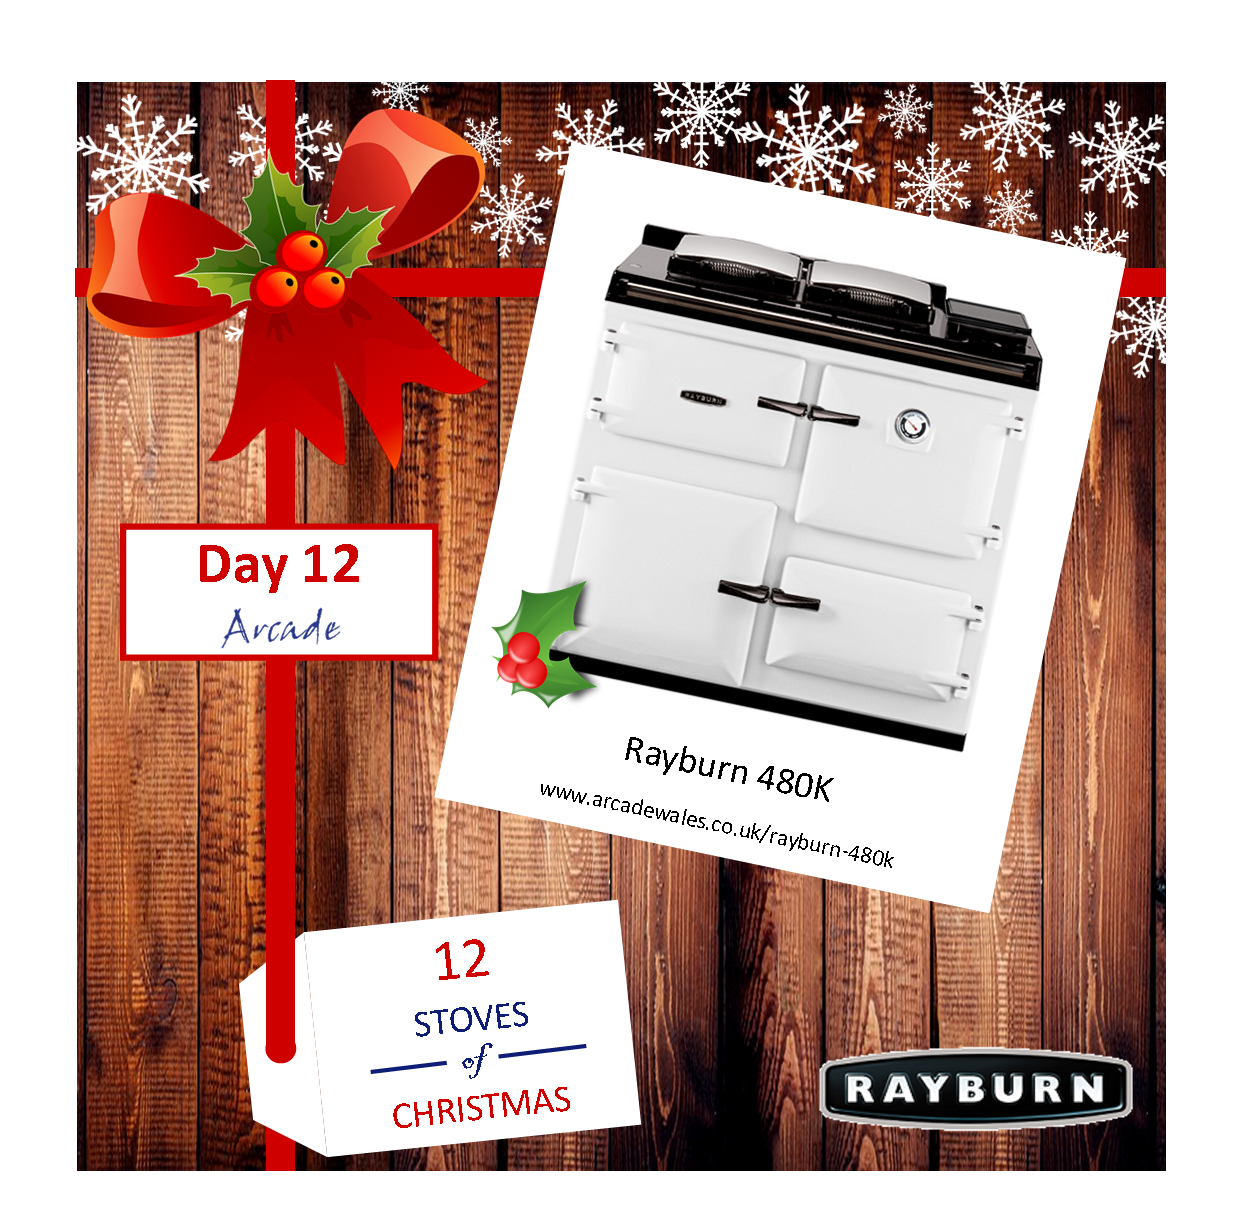 Day 12 - 12 Stoves of Christmas